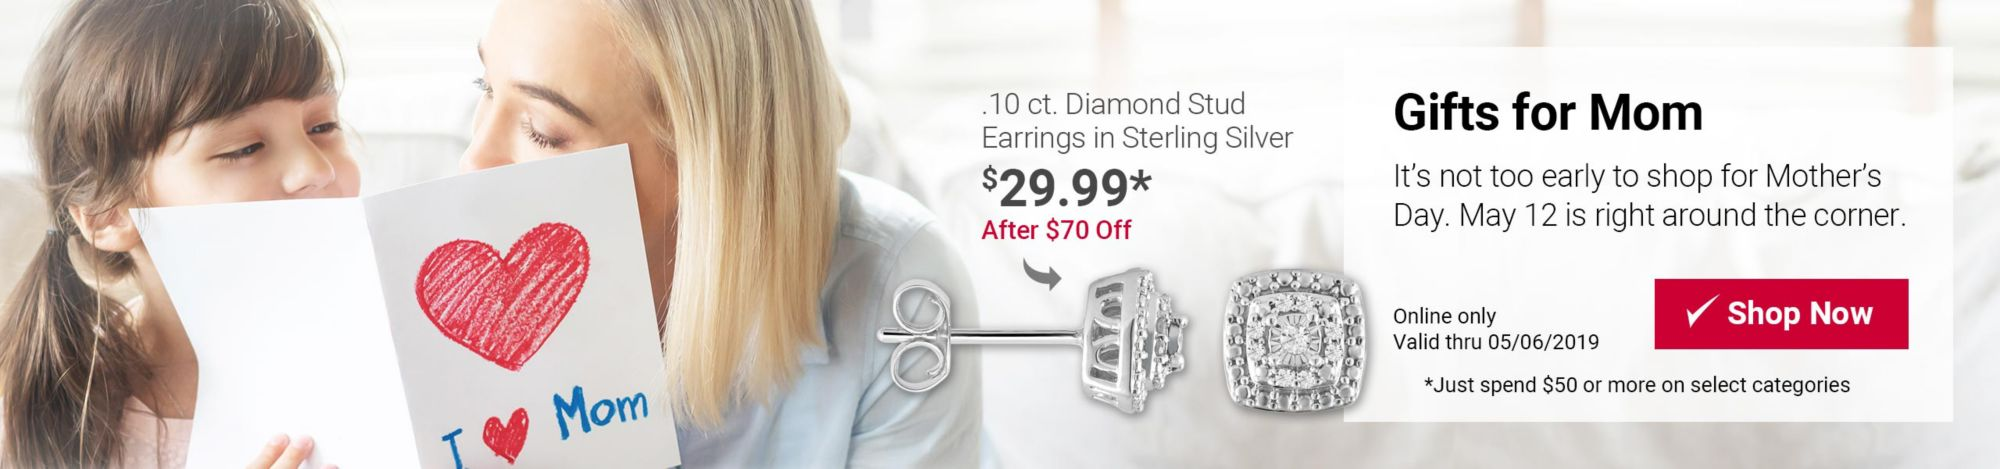 Gifts for mom featured deal: $70 off .10 carat diamond stud earrings in sterling silver after spending $50 or more on select categories. Now $29.99. Click here to shop now.